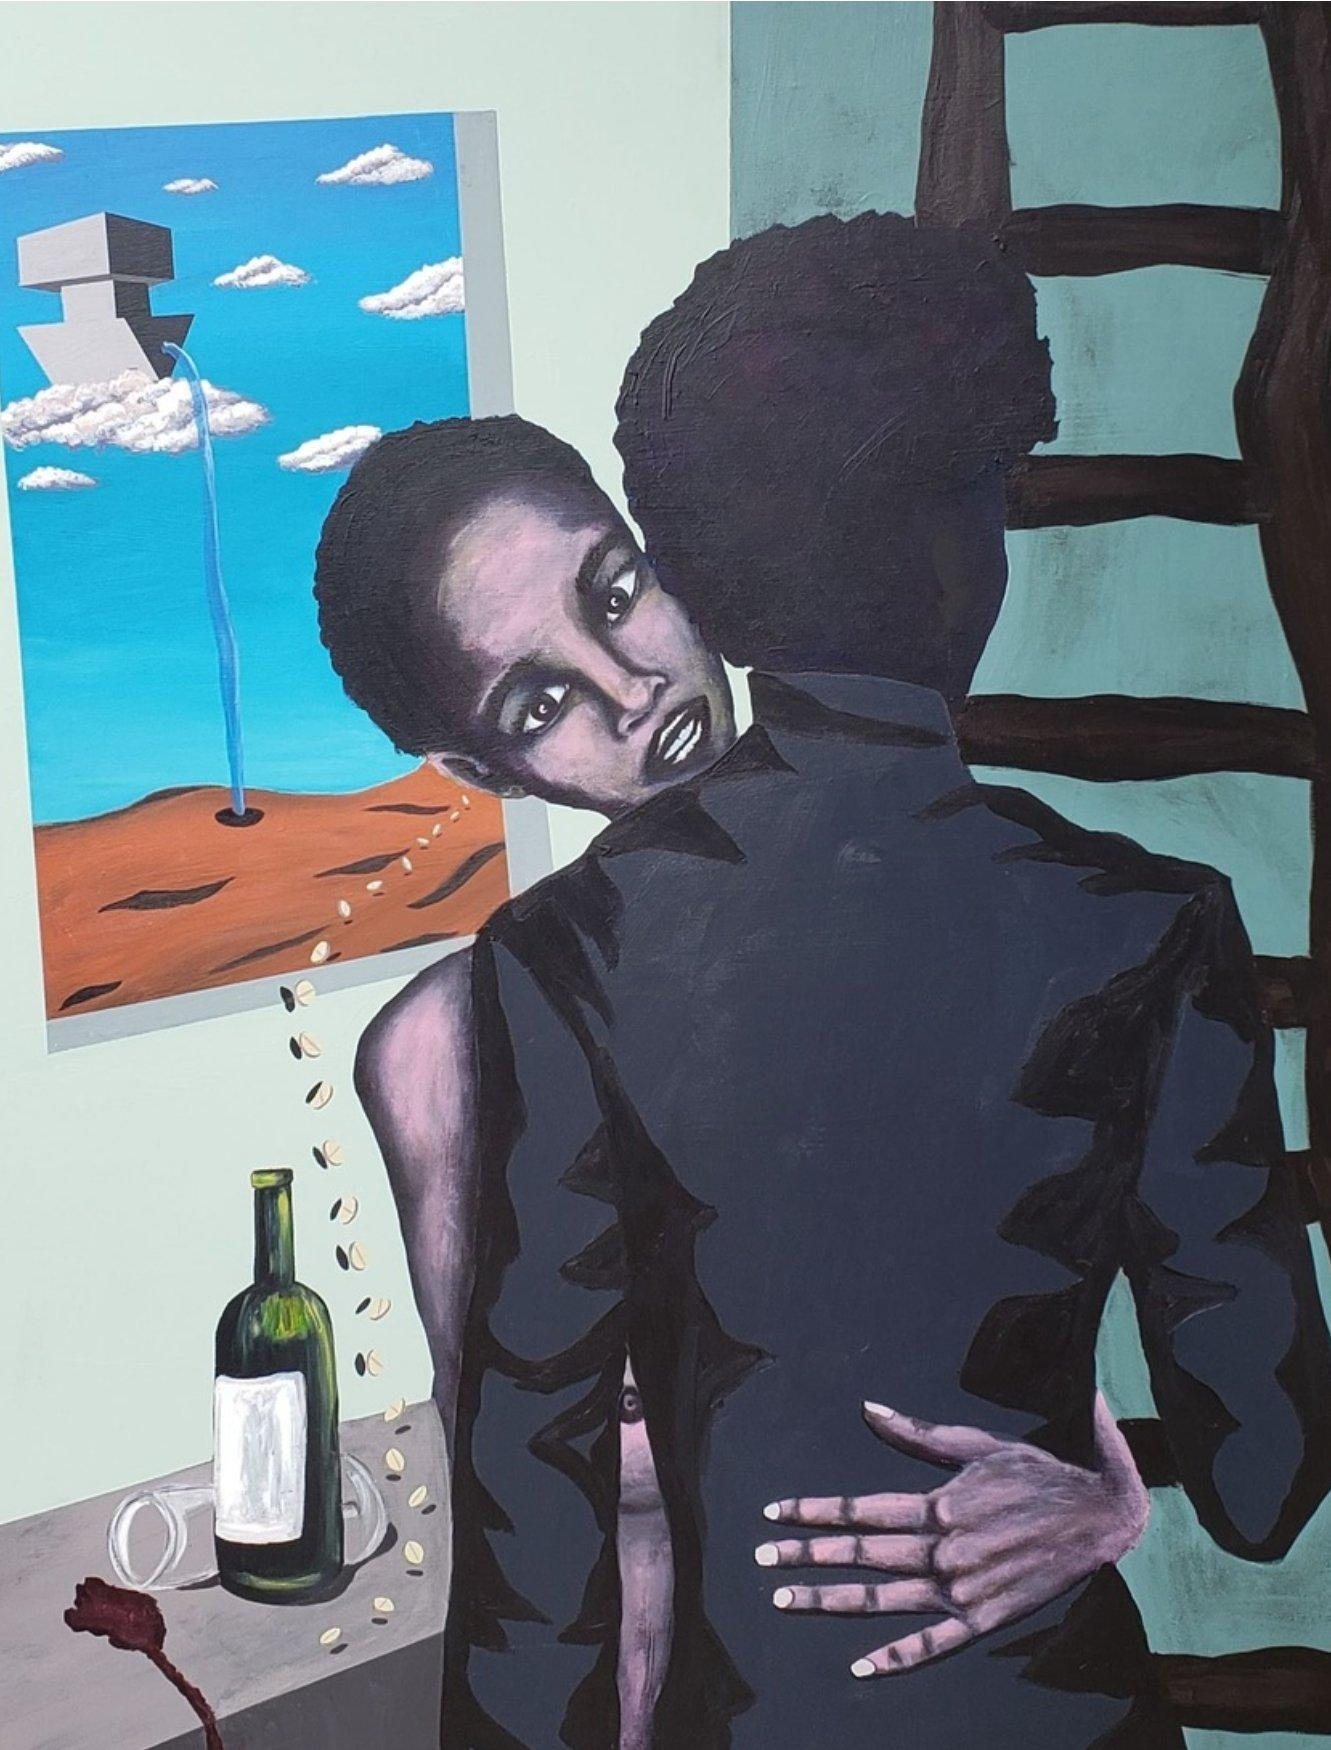 Wasting A Good Vintage - Surreal Figurative Painting by Nigerian American Artist